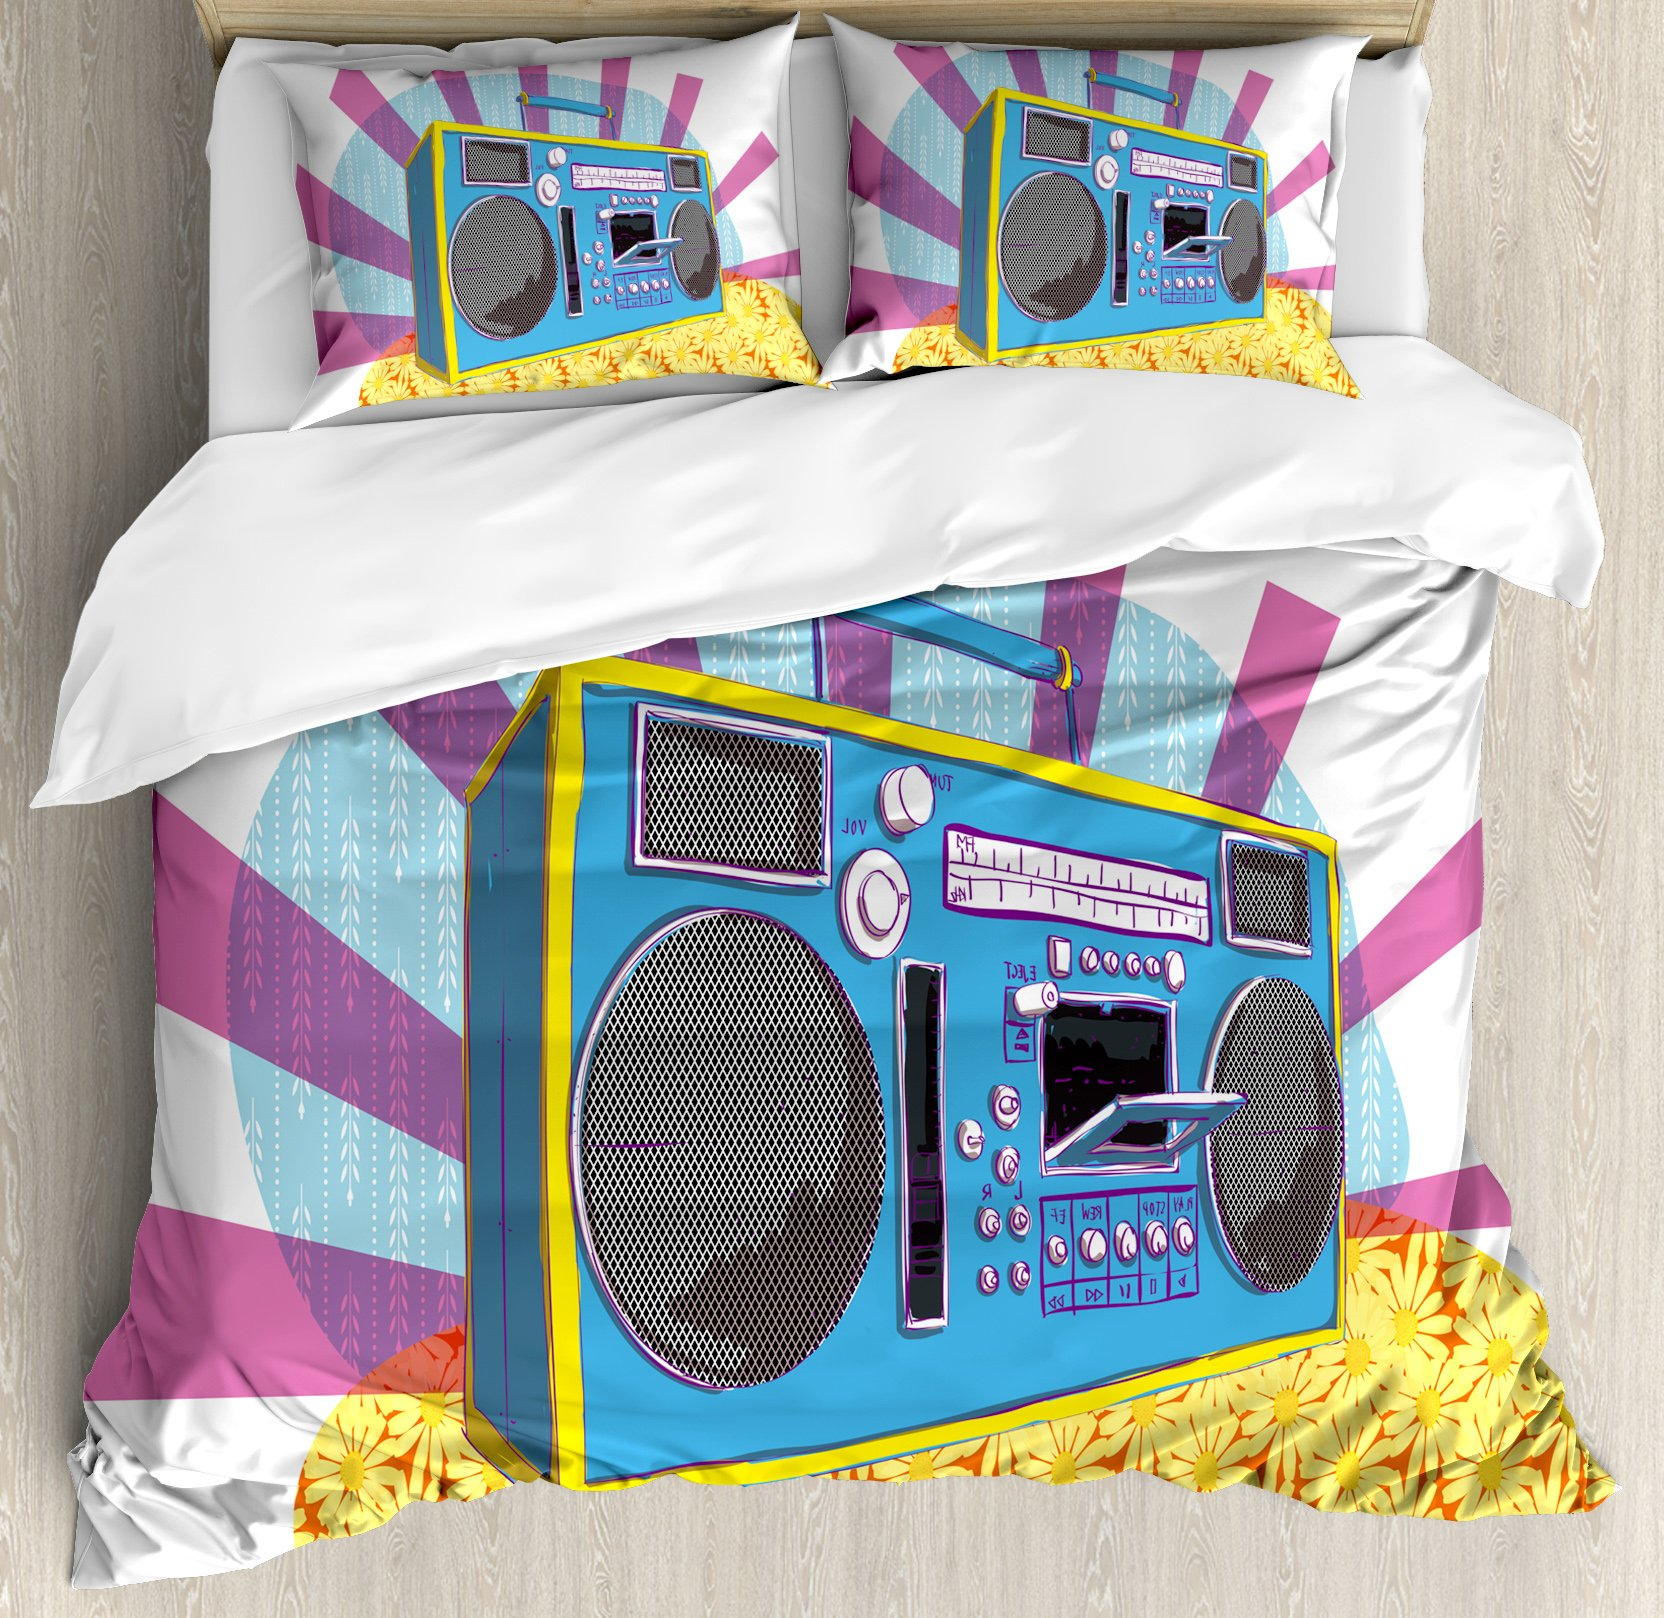 70s Party Decorations Duvet Cover Set Queen Size by Ambesonne, Retro Boom Box in Pop Art Manner Dance Music Colorful Composition, Decorative 3 Piece Bedding Set with 2 Pillow Shams, Multicolor